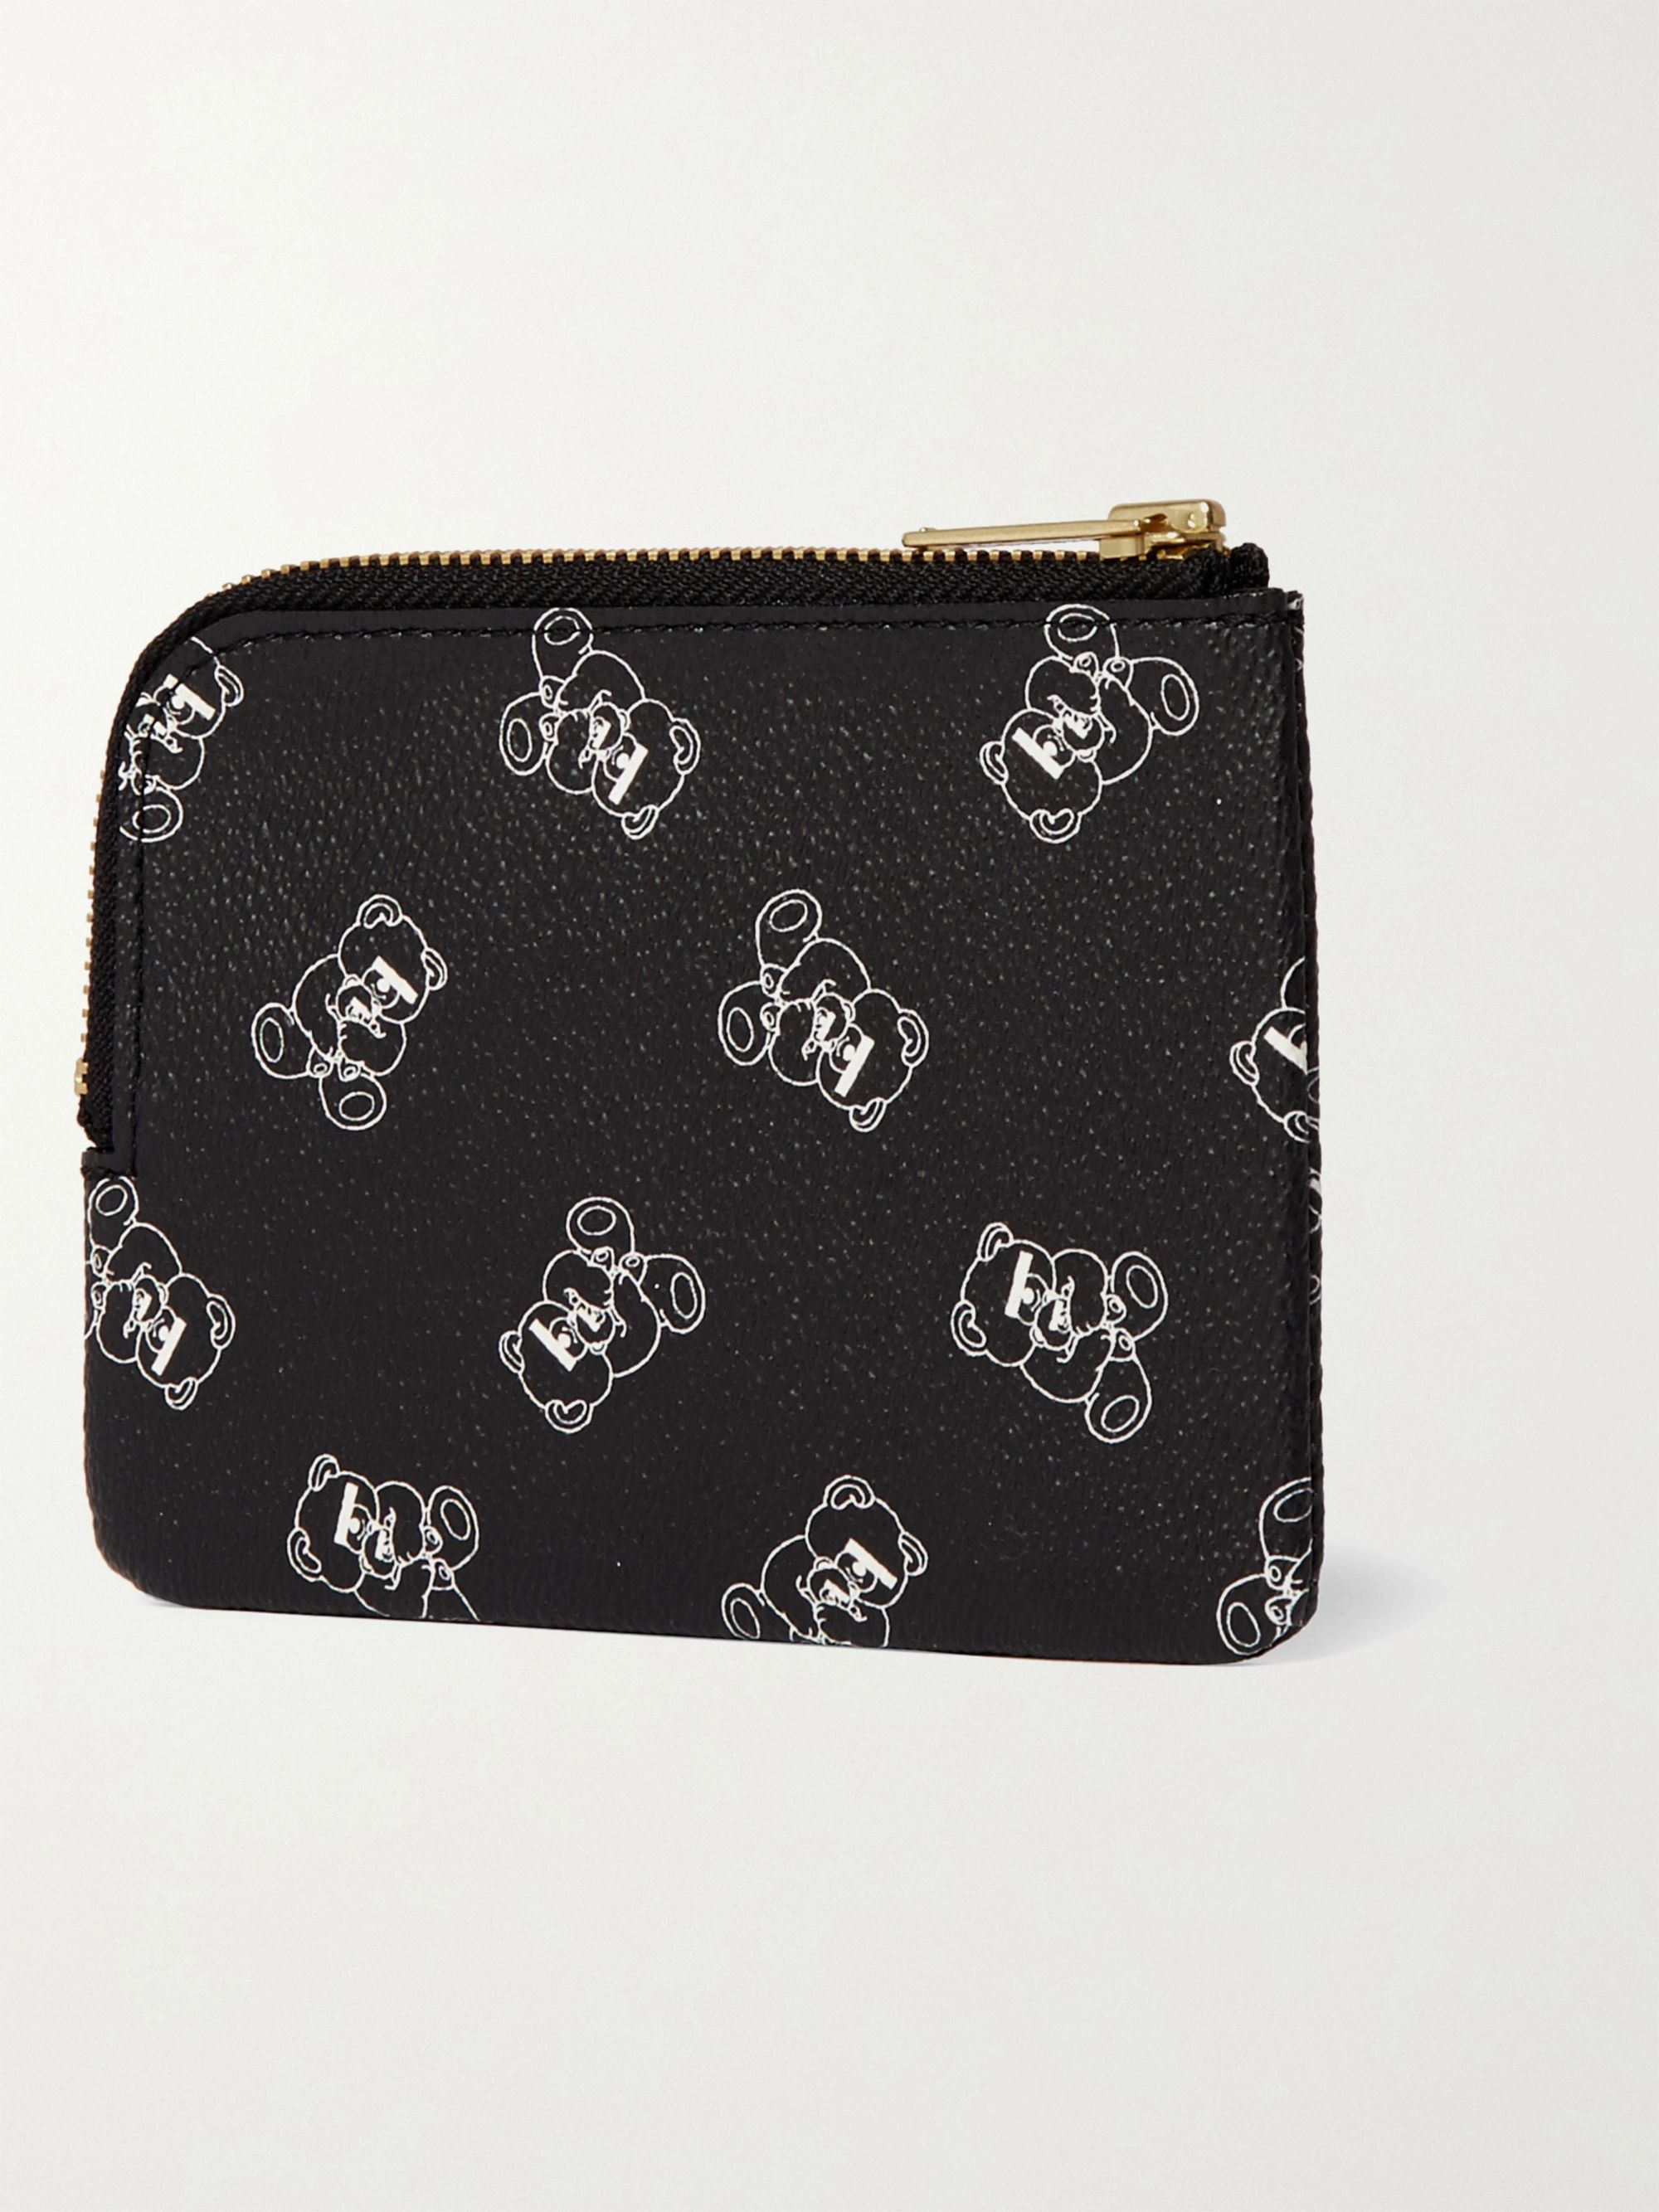 Black Ubear Printed Faux Leather Wallet | Undercover